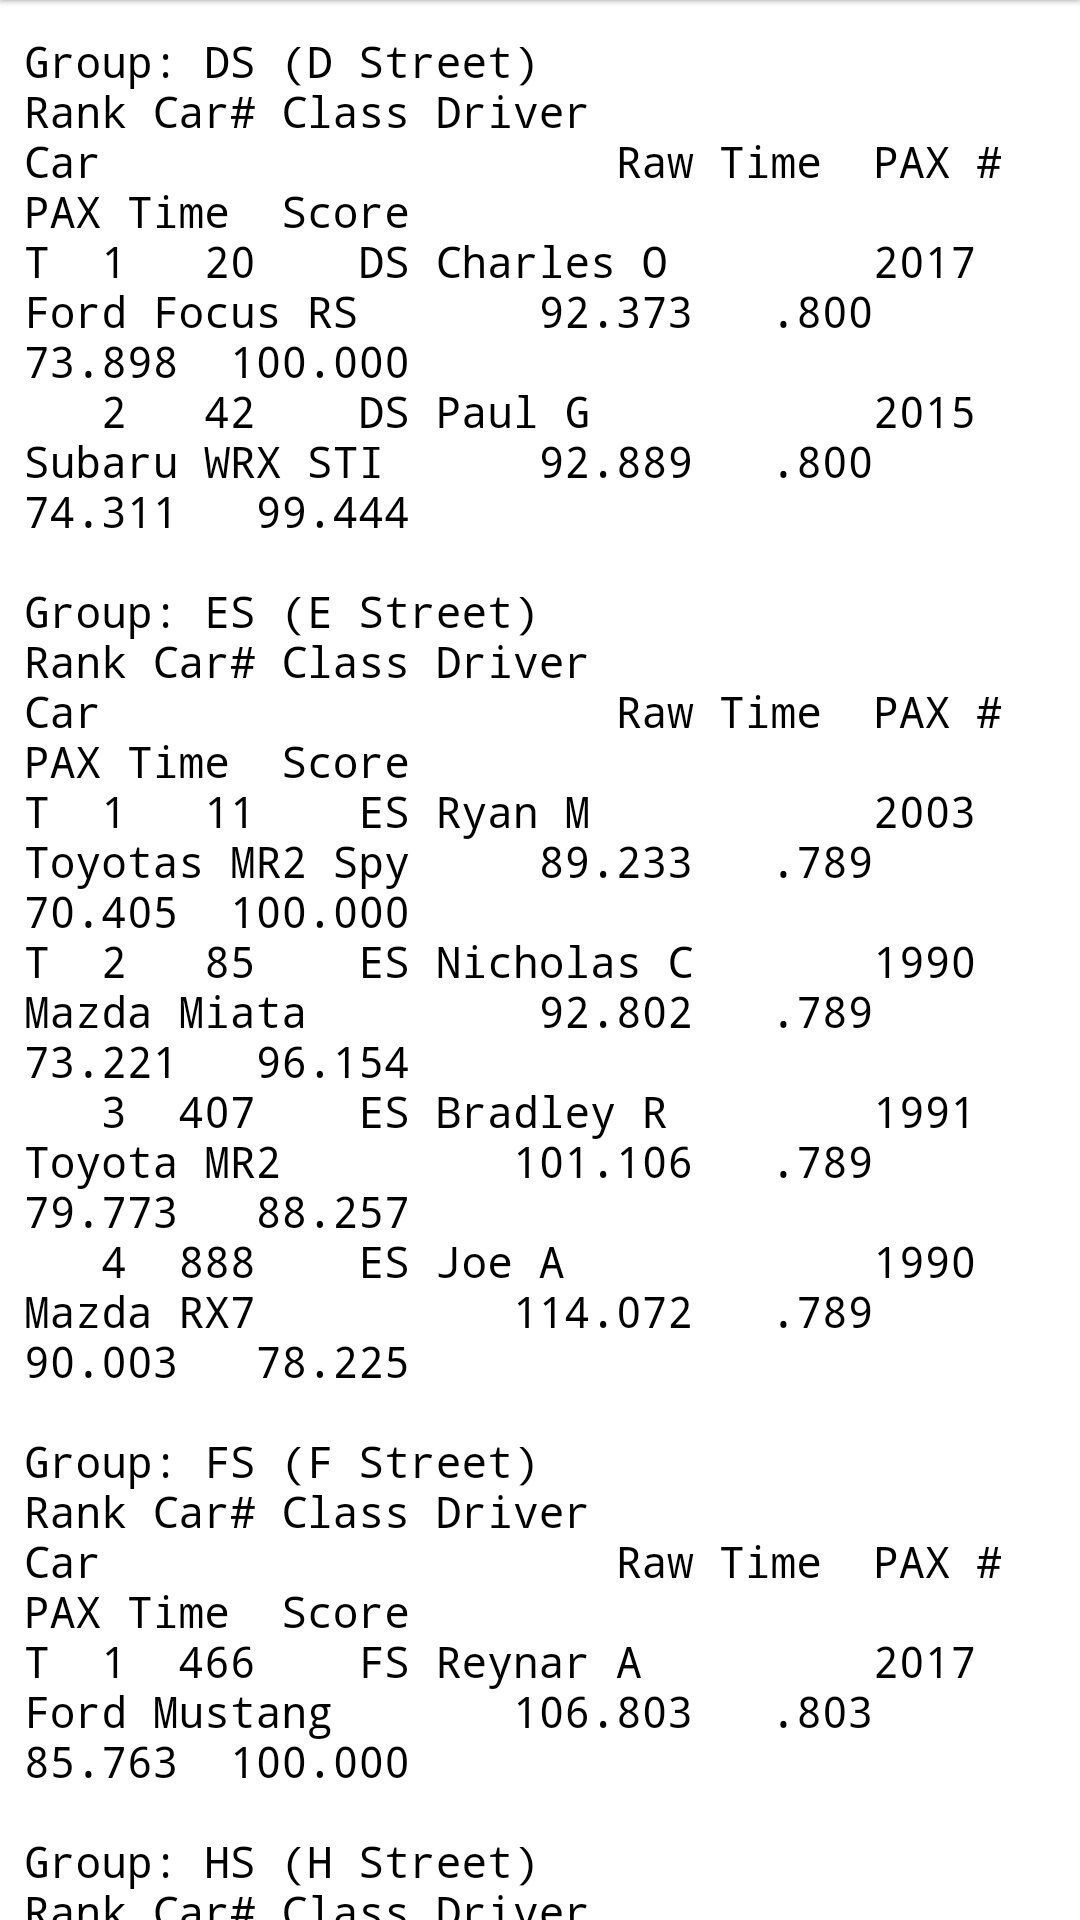 Attended the August 25th auto x to test her out. For this session Im on my civics old race wheels with toyo R888R square setup. Mostly stock other than lowering springs and an axleback.  Not too bad as I podiumed for the ES class. Overall 10th. Fairly decent for my first time out ever in a RWD MR. I was definitely a lot more cautious with this car as I am a complete noob in this type of configuration. At this stage of the car and my abilities, my EM1 would have demolished this car in its current state. I am well aware a lot of it has to do with the dummy behind the wheel lol. But Ill take it and try and get the seat time I need to be competitive again. Next up is to install the coilovers once they arrive then test, test and test some more. I'm really considering going back to a staggered setup to maintain the factories intended characteristics, but only time will tell.